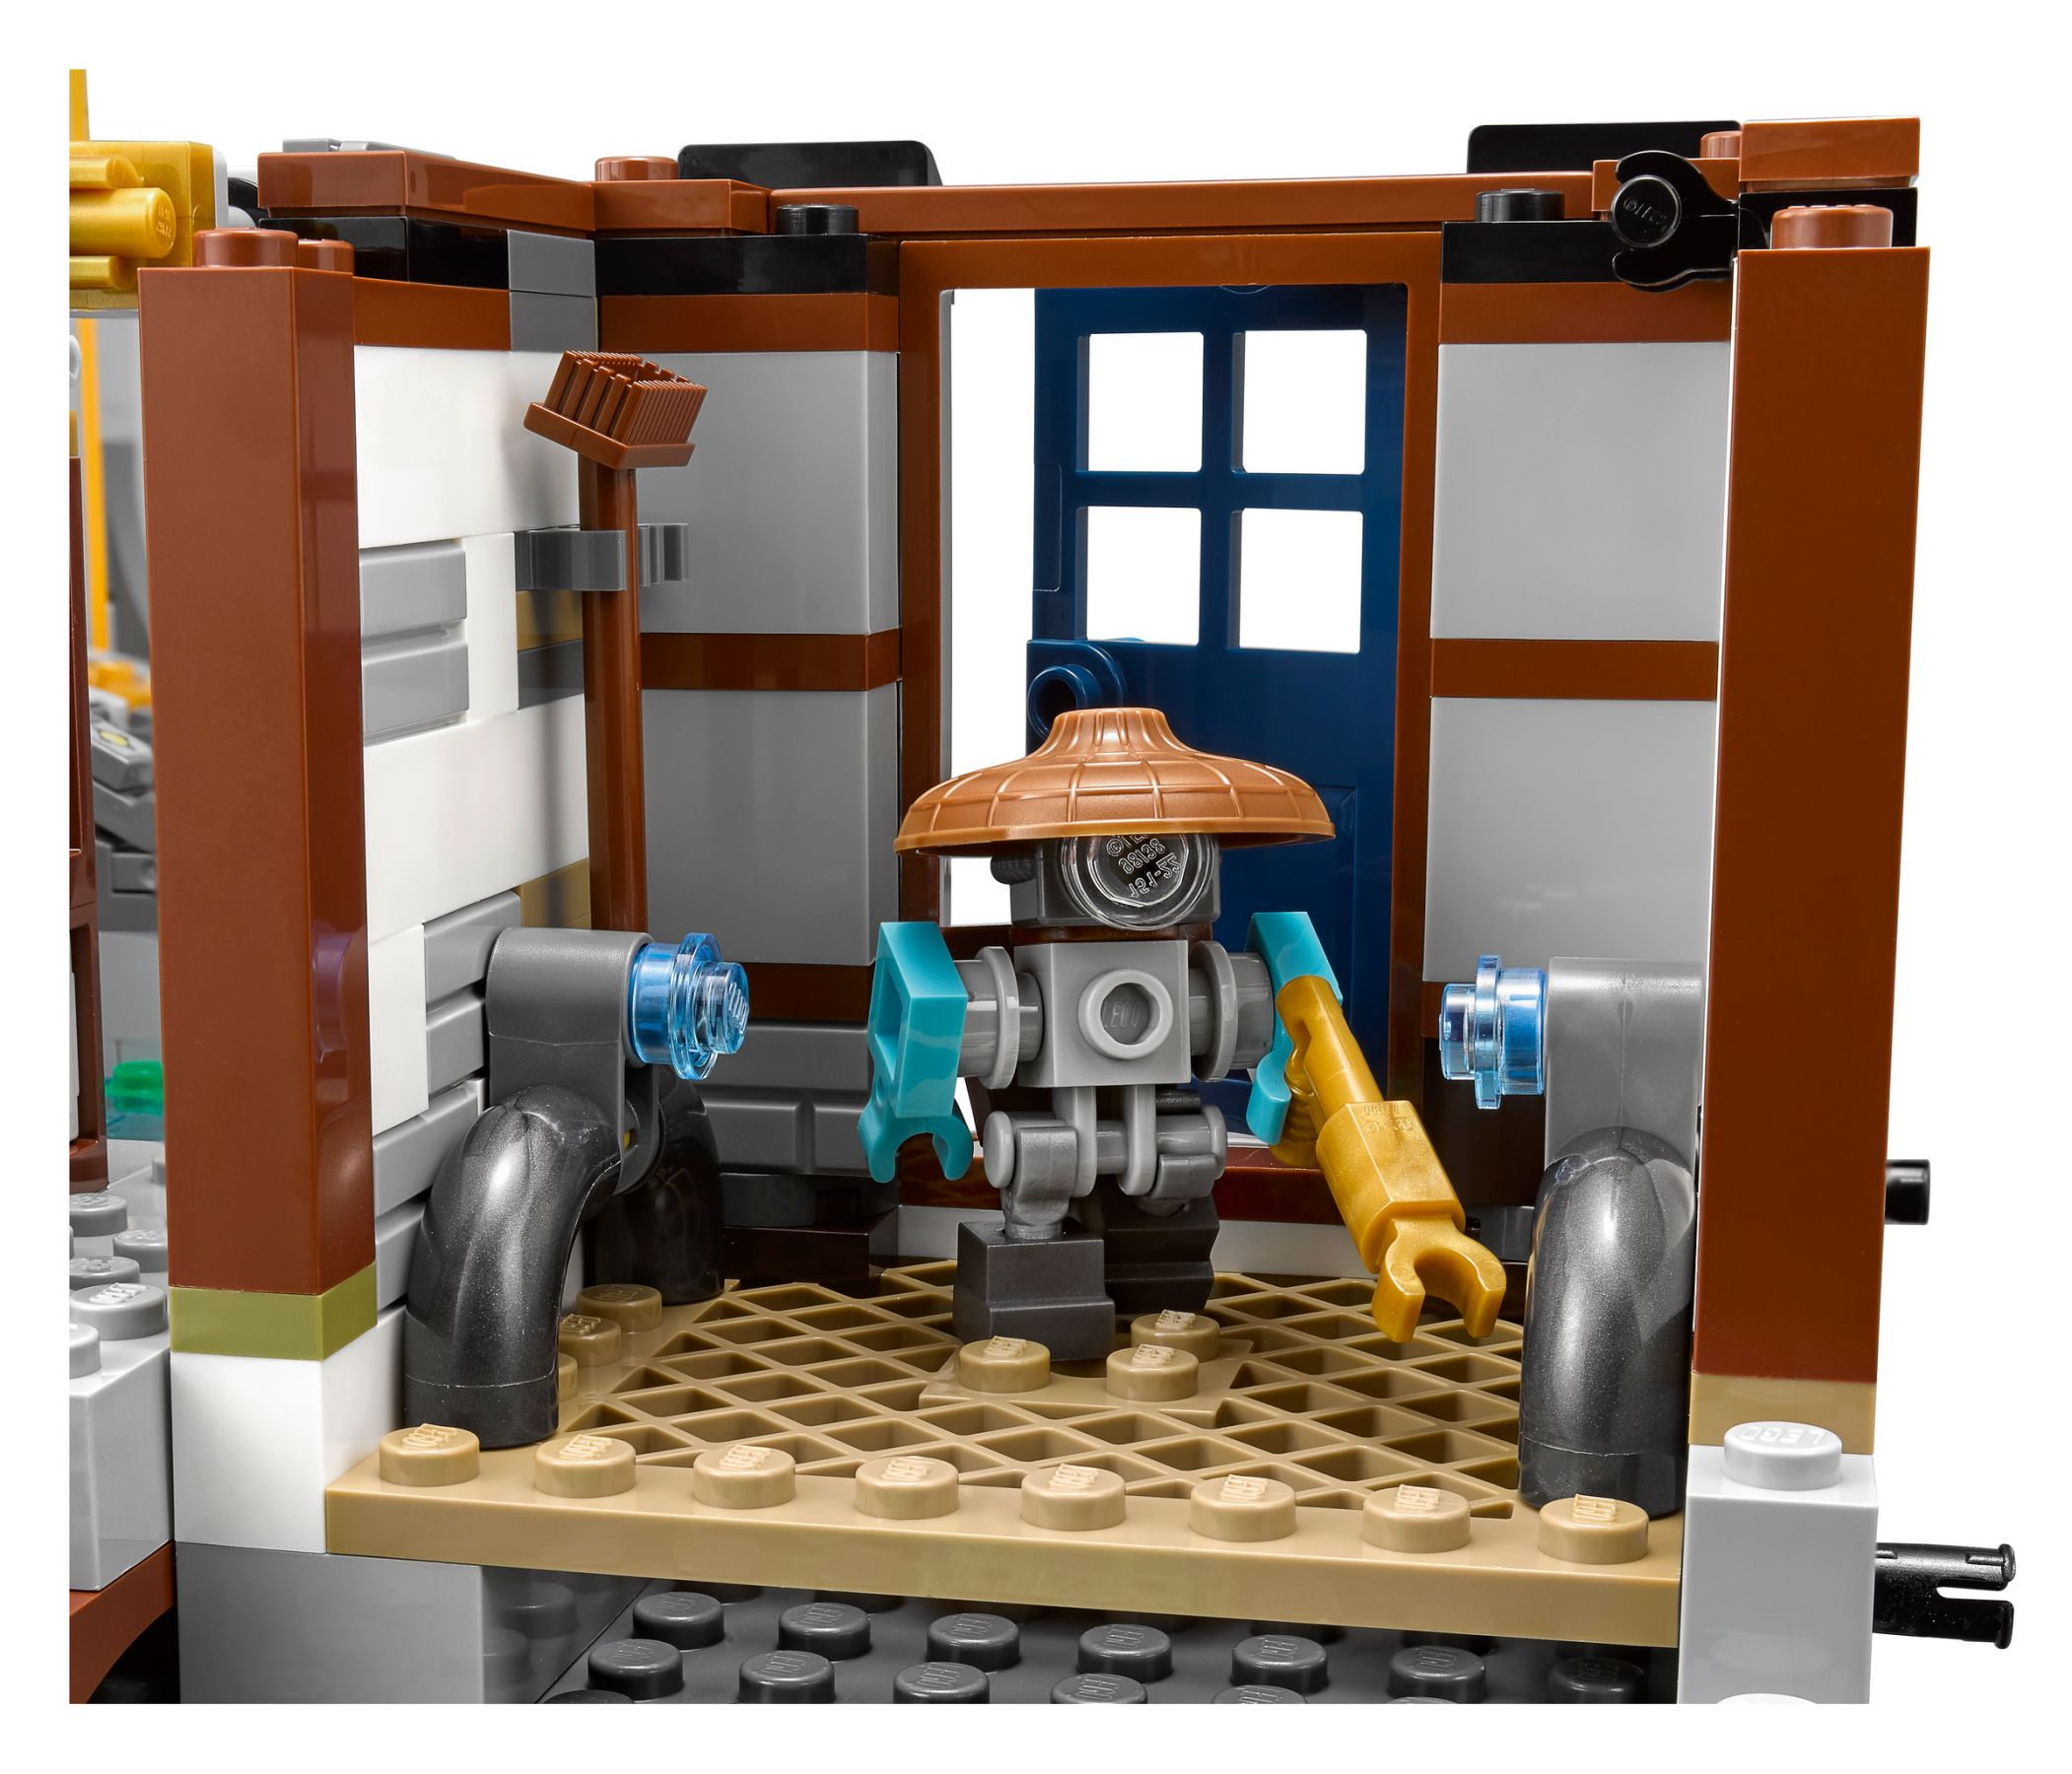 LEGO The LEGO Ninjago Movie 70620 Ninjago City LEGO_70620_alt13.jpg